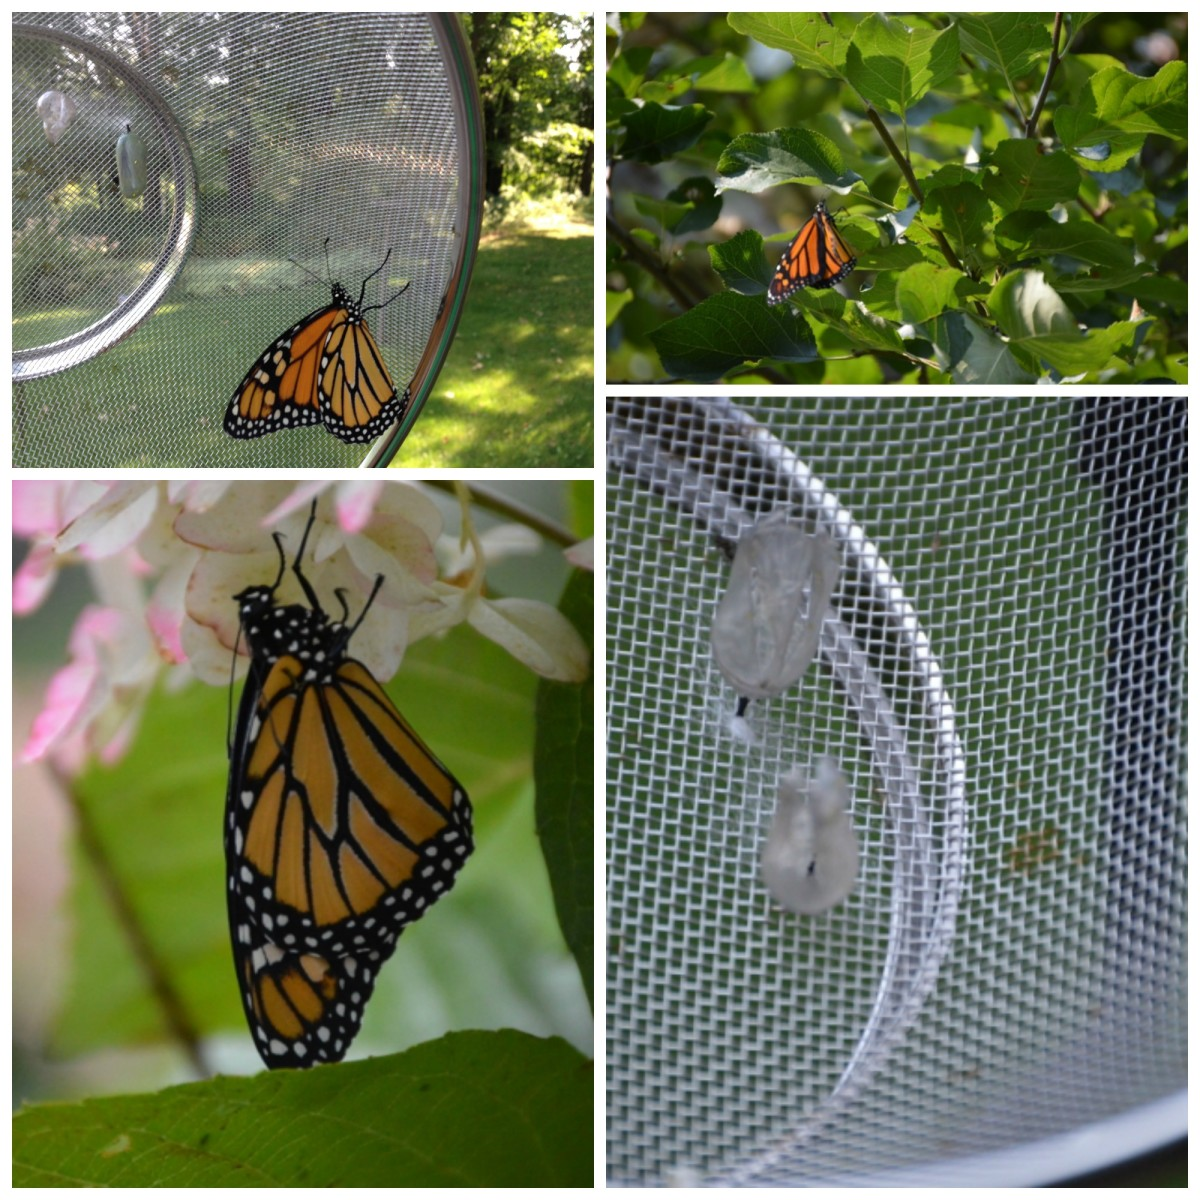 the-bluebirds-and-the-monarchs-have-came-home